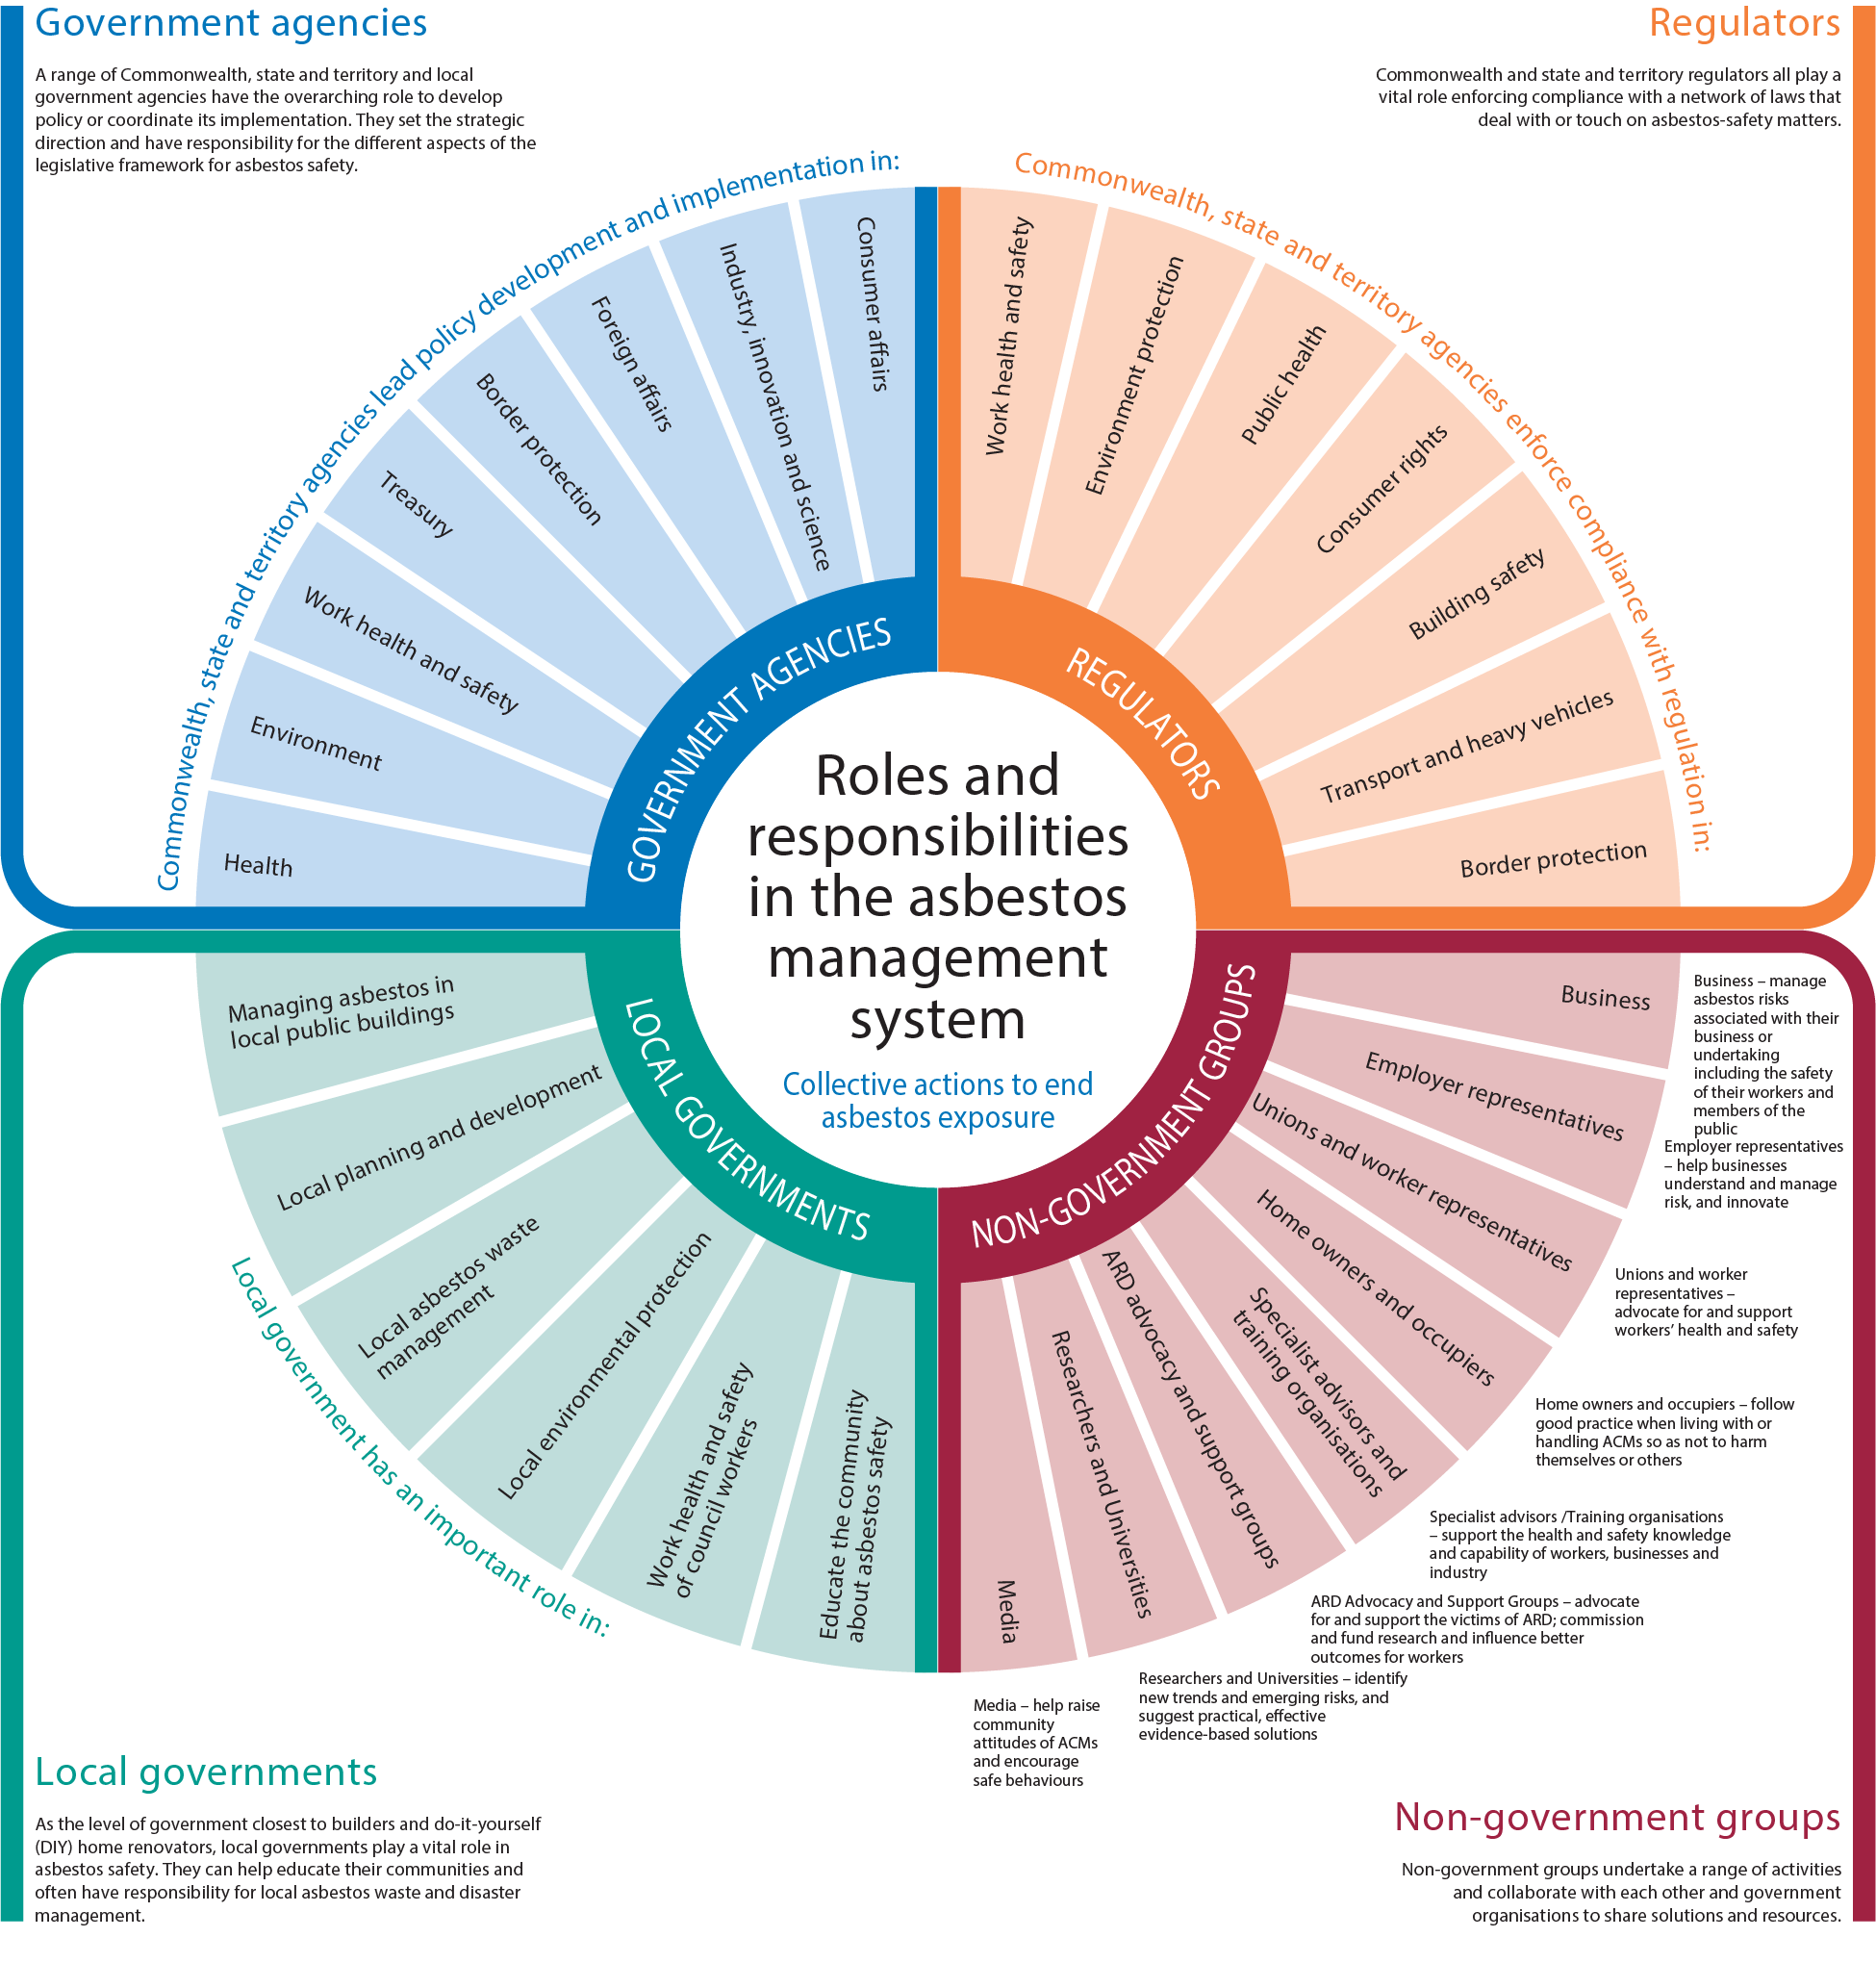 This depicts a circle showing the many stakeholders in the asbestos management system